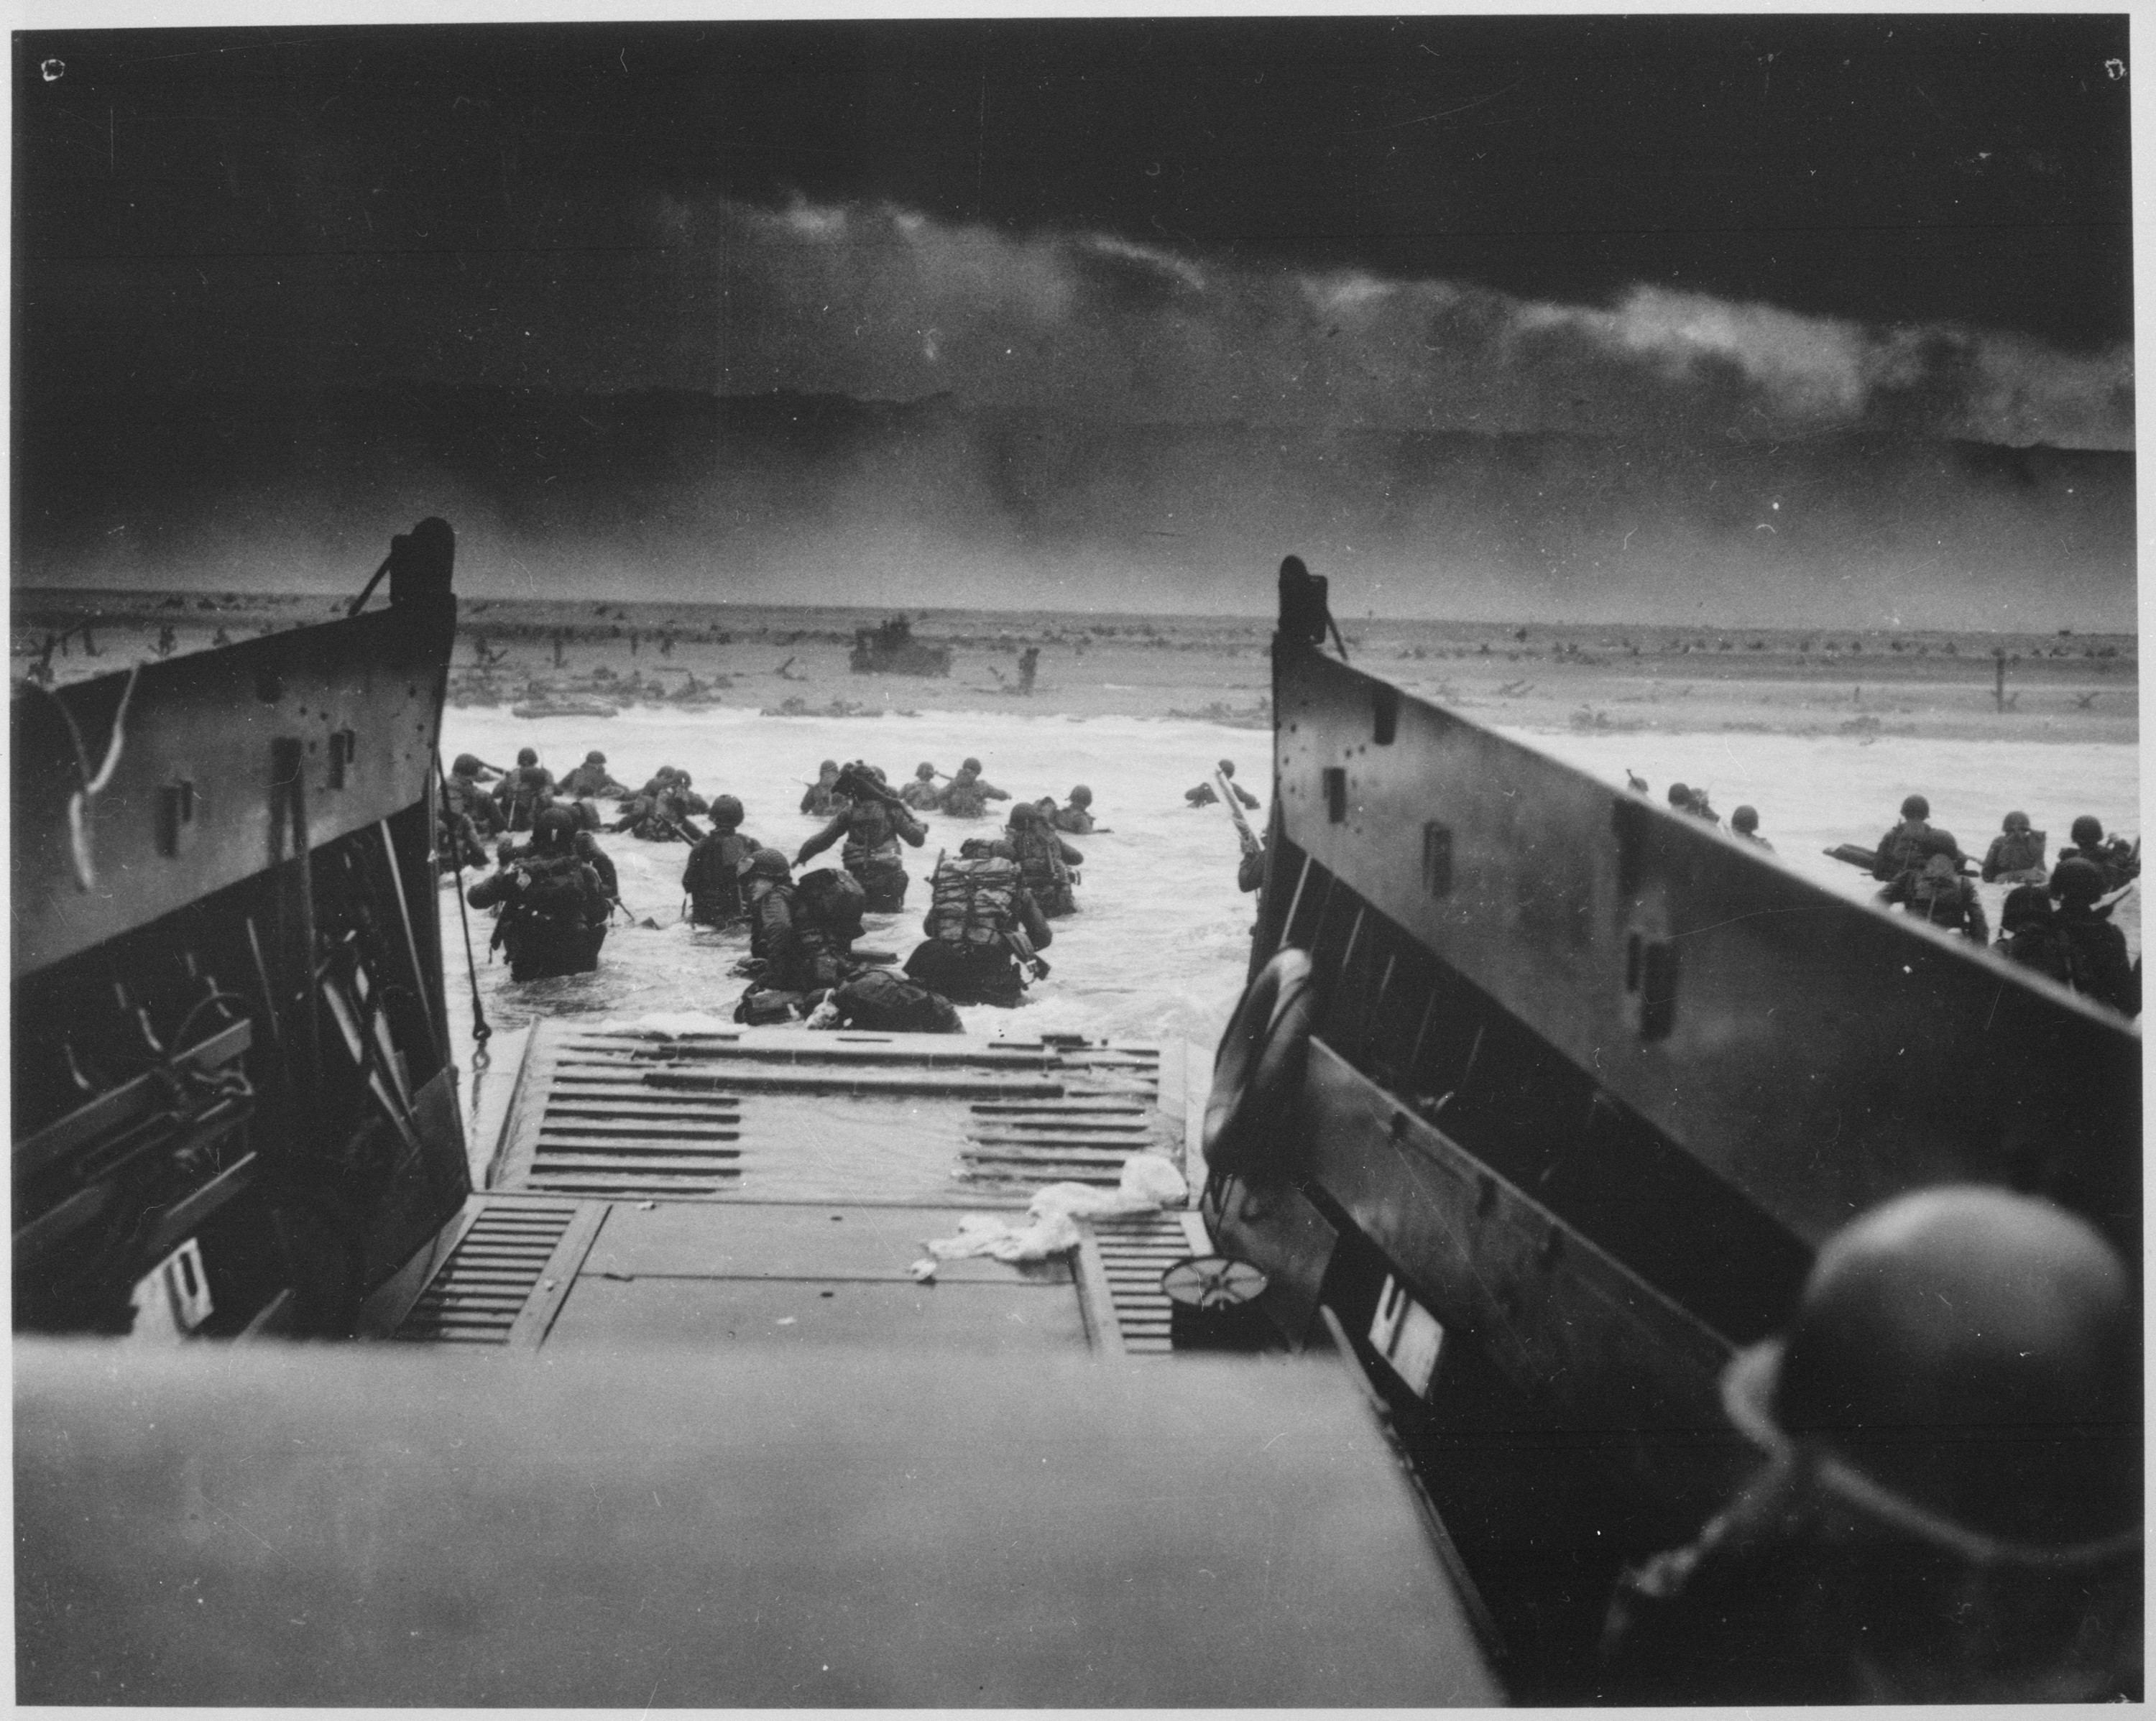 Photograph_of_the_Normandy_Invasion_-_NARA_-_513173 (2) - Copy